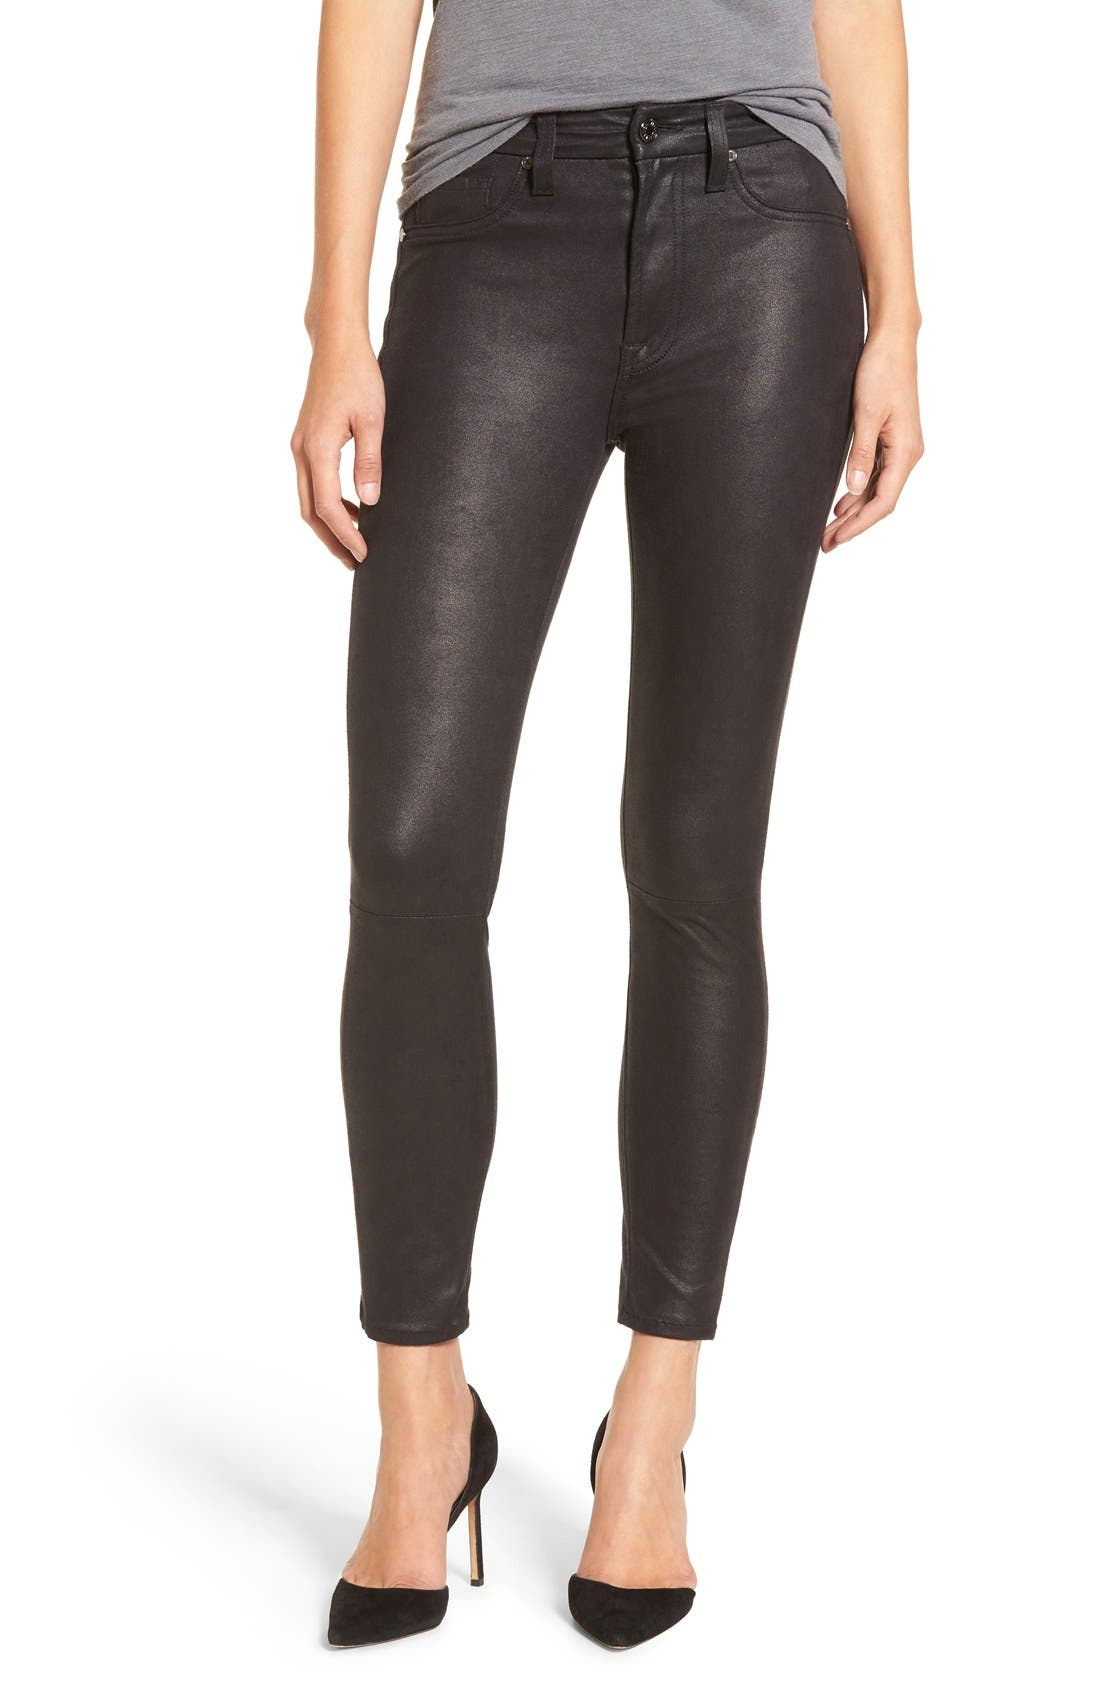 7 FOR ALL MANKIND<SUP>®</SUP>, Knee Seam Skinny Pants, Main thumbnail 1, color, 004